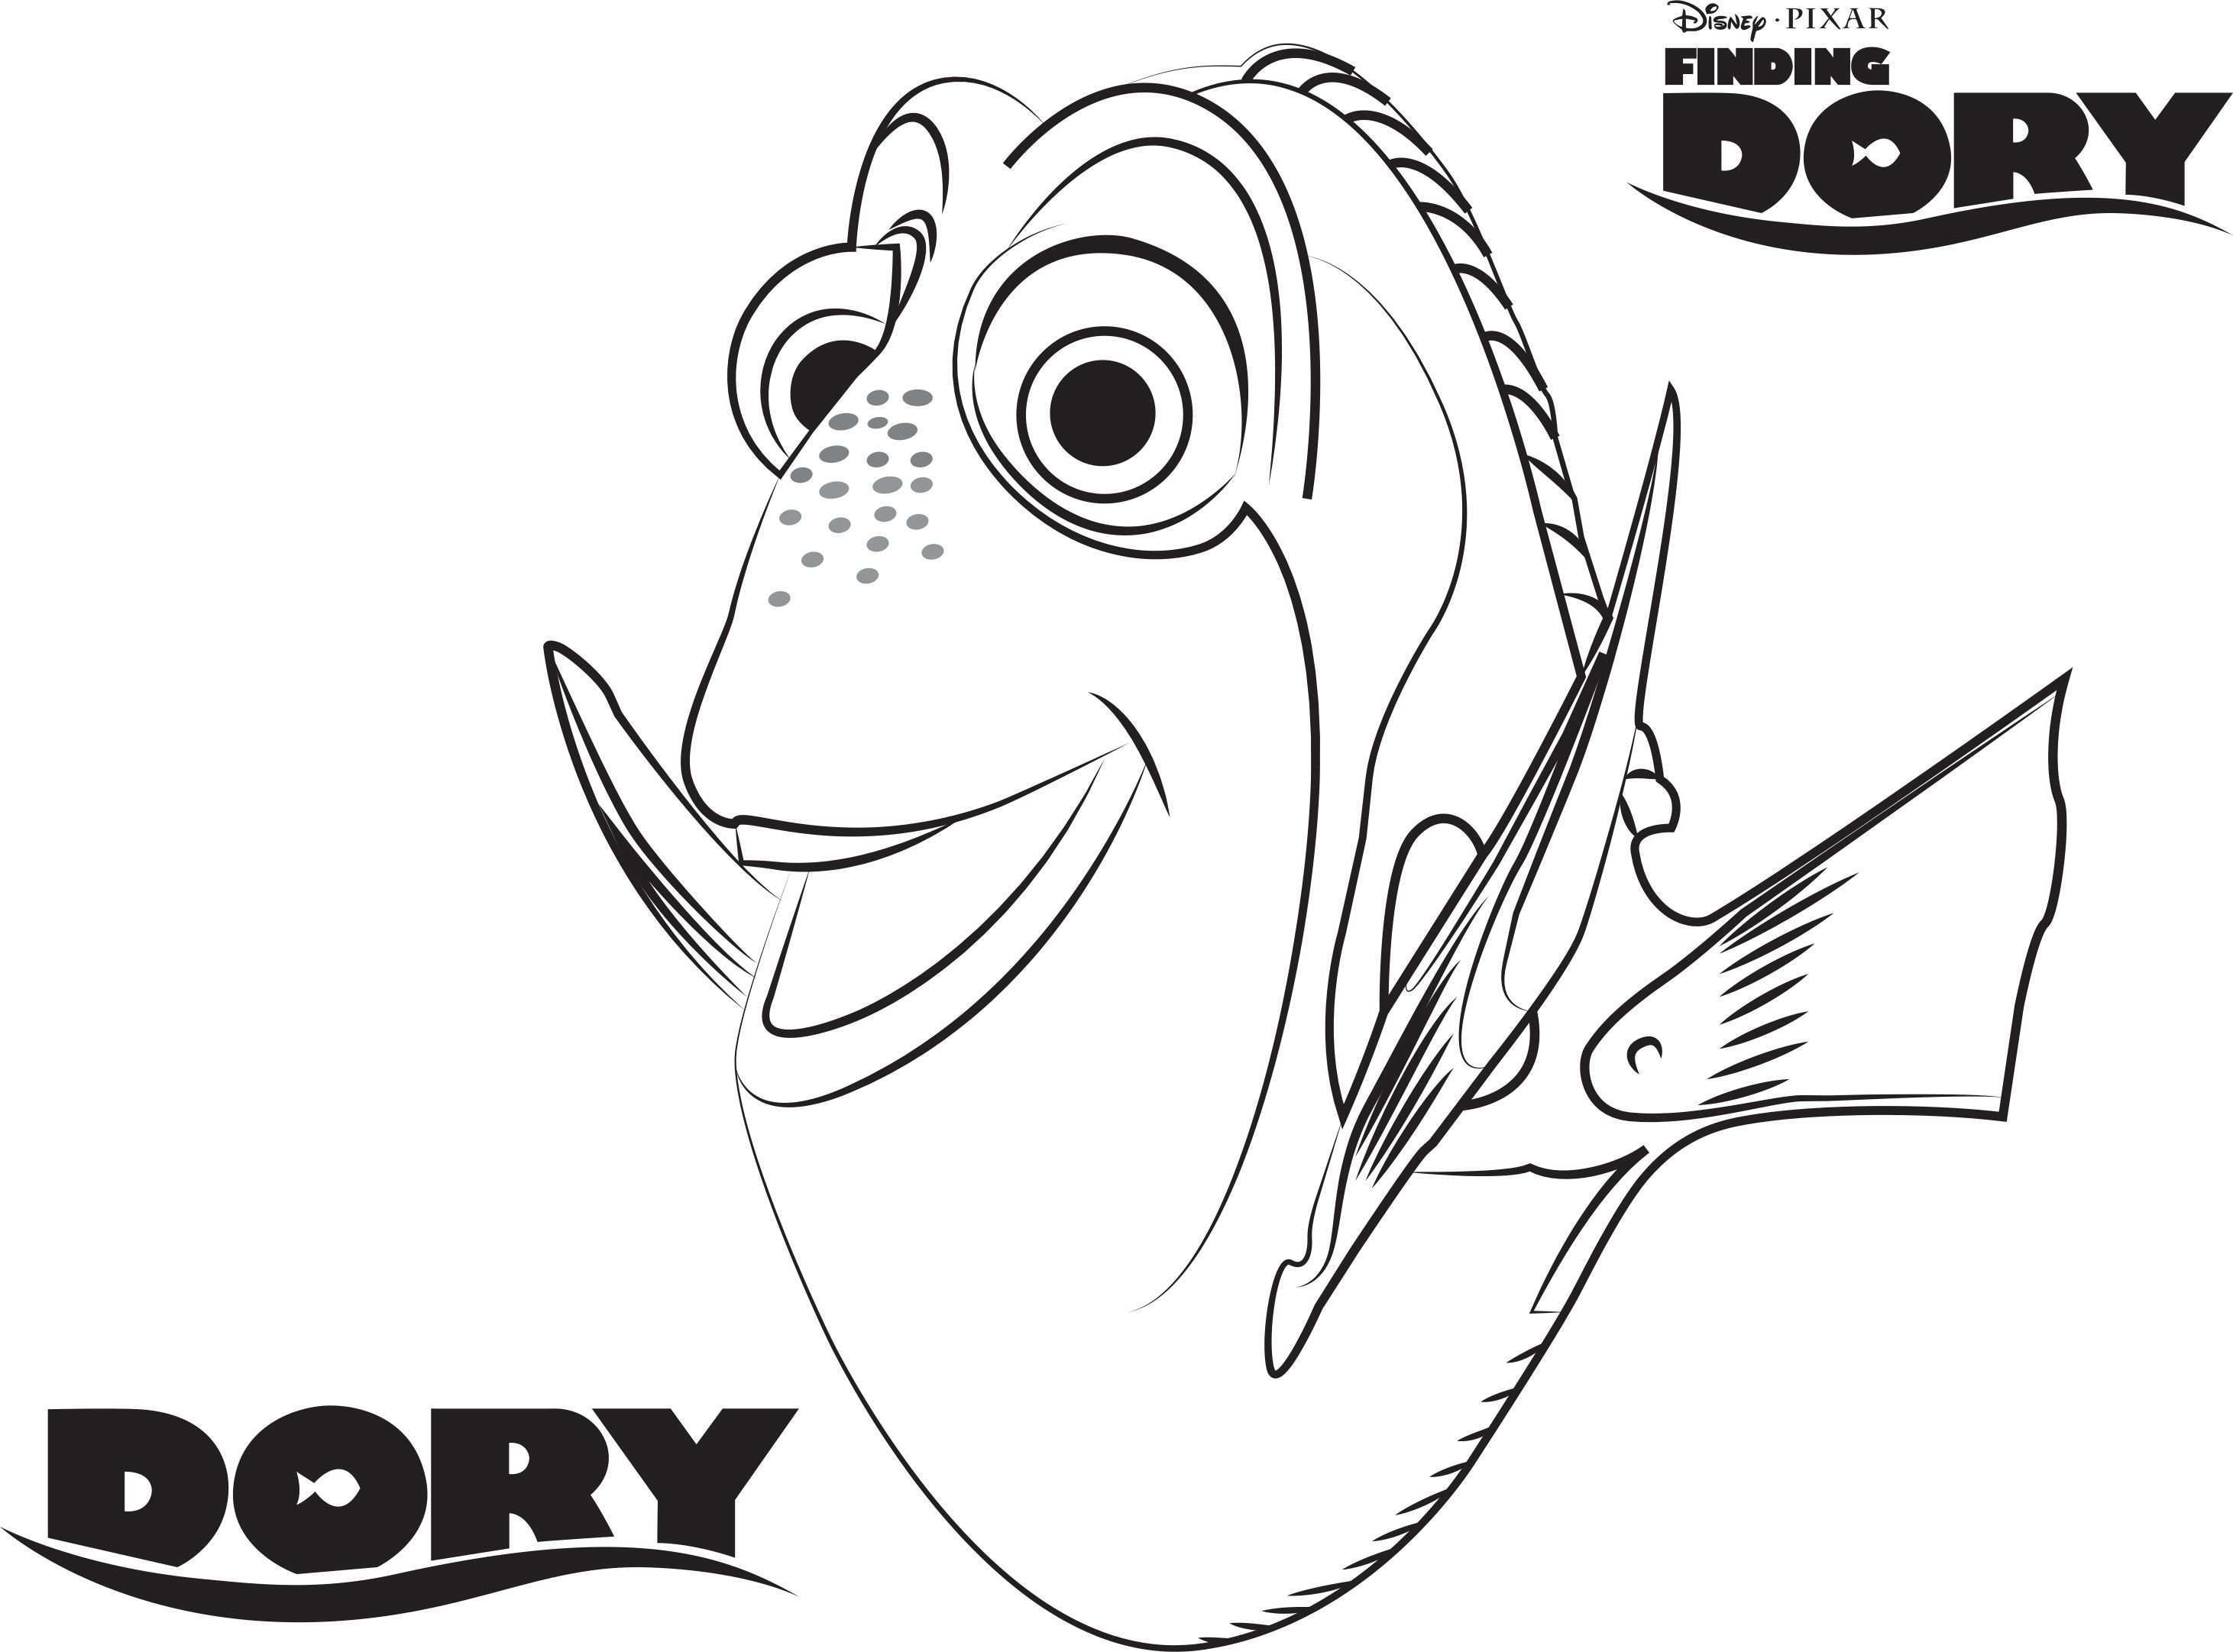 Pin By Kim Faulks On Ryba Nemo Coloring Pages Finding Nemo Coloring Pages Disney Coloring Pages